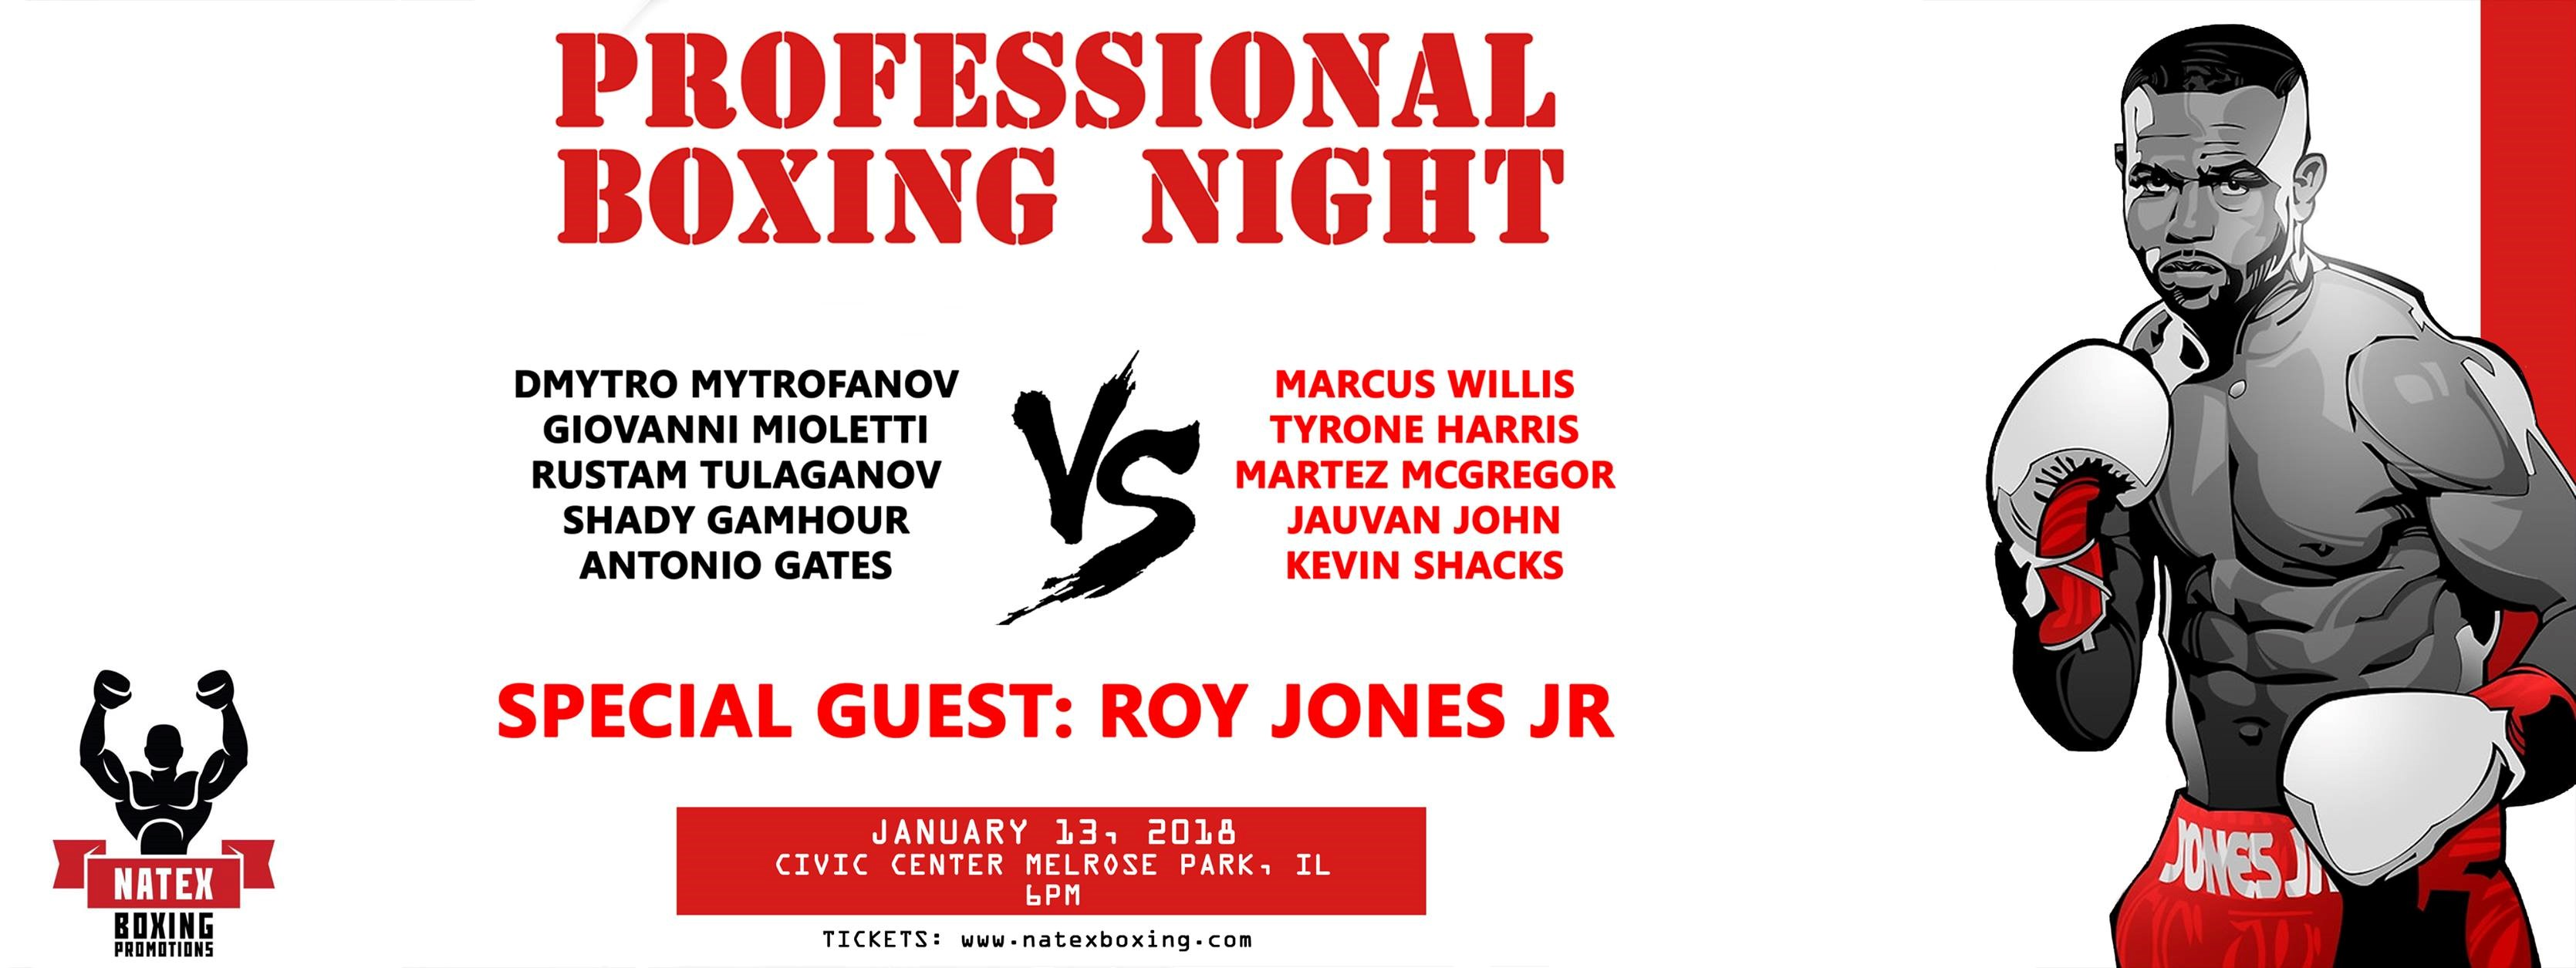 Re: Boxing Night changed to larger venue for professional bouts Jan. 13: Midwest Conference Center Northlake